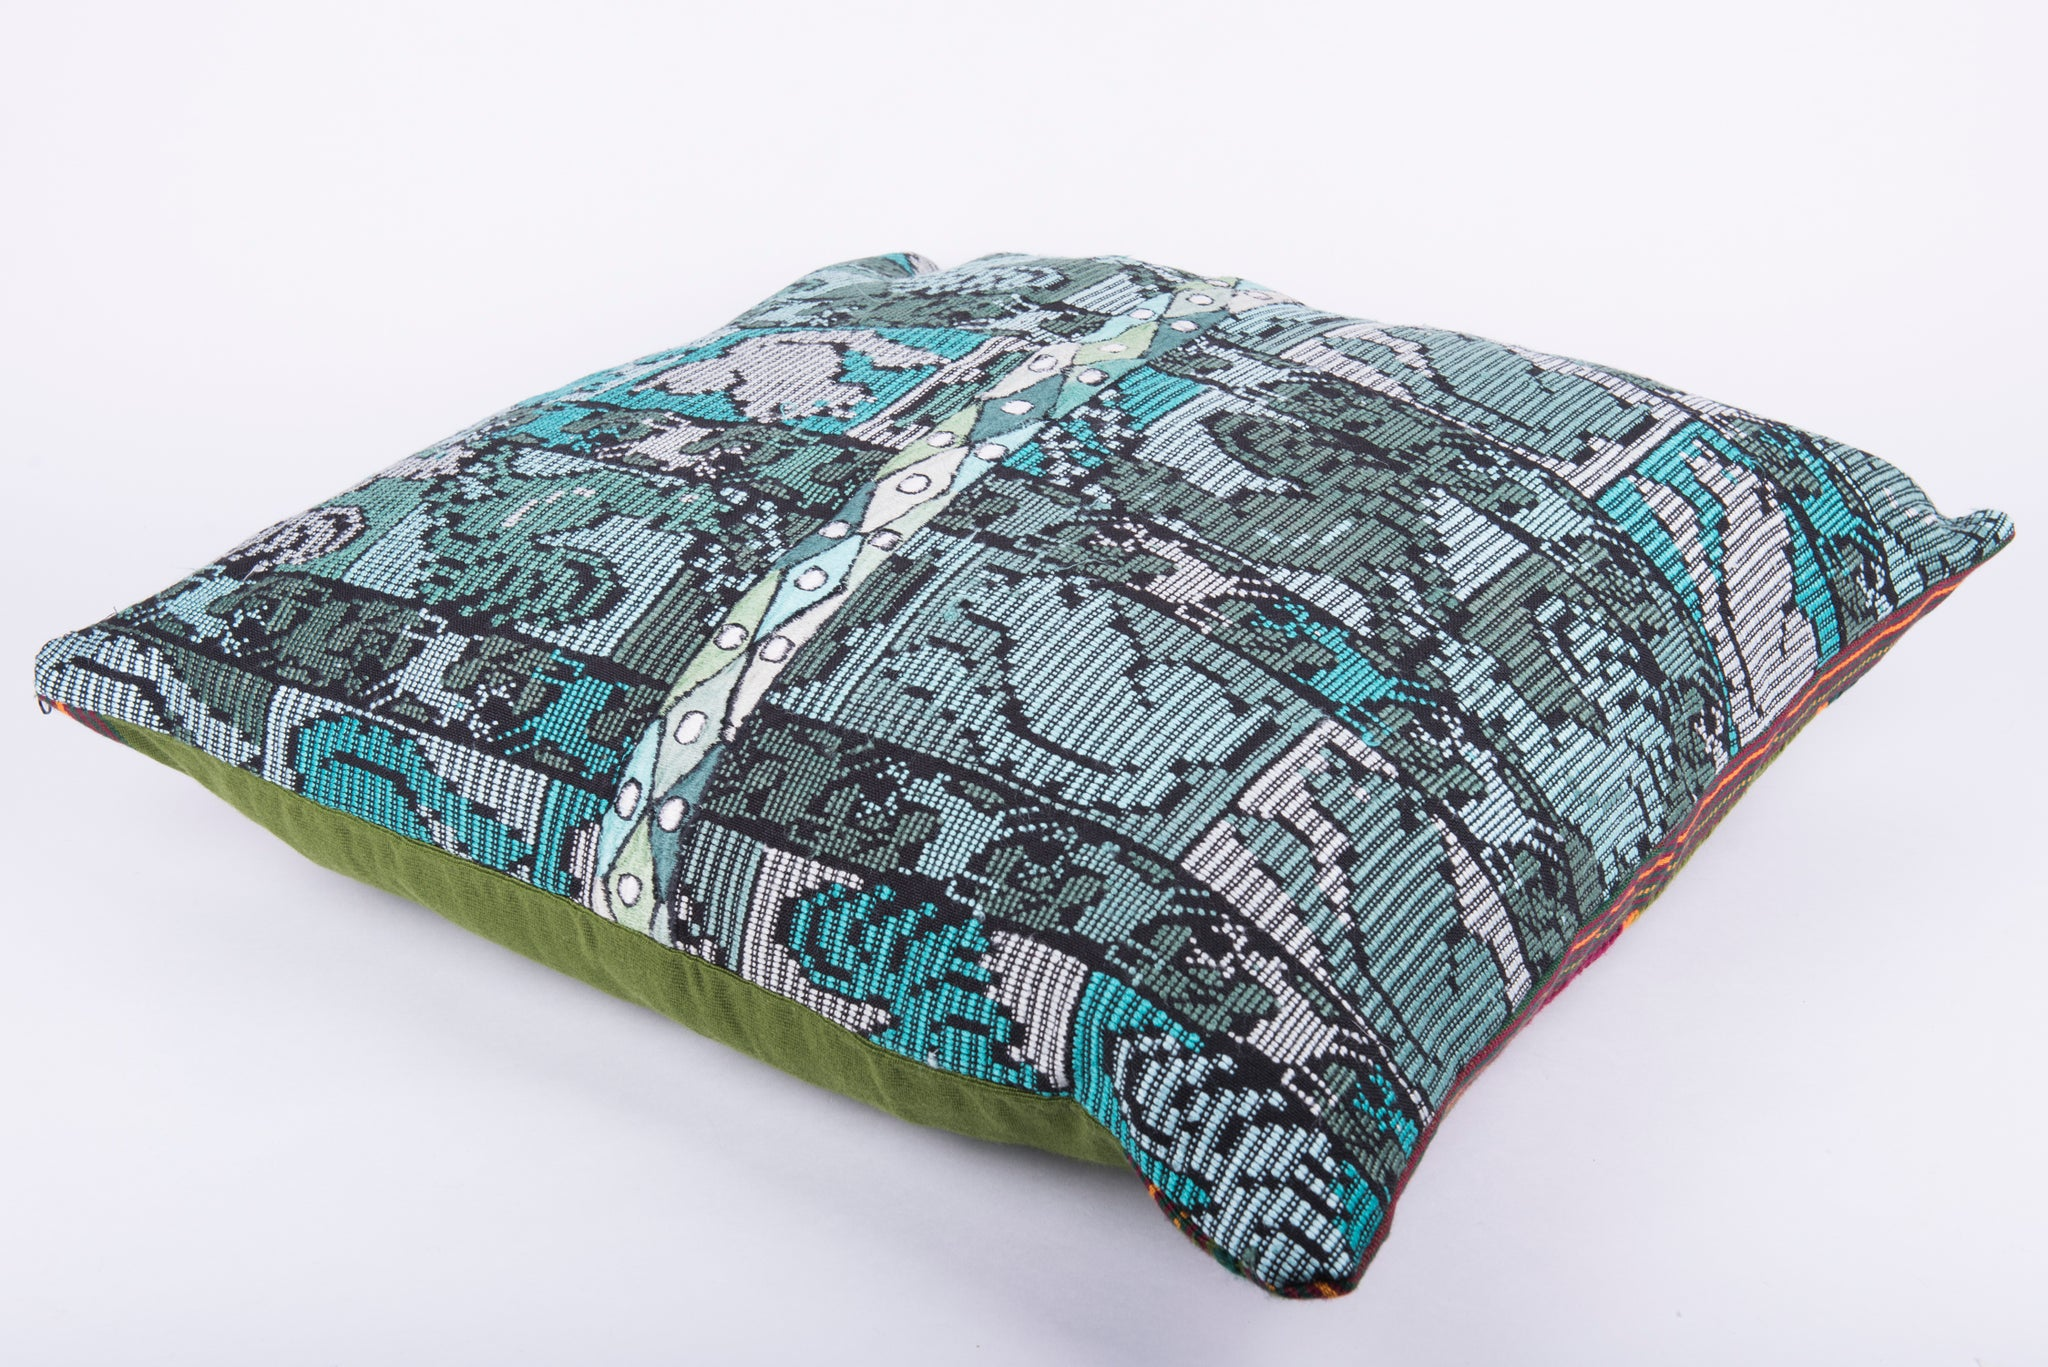 Pillow case no.0012